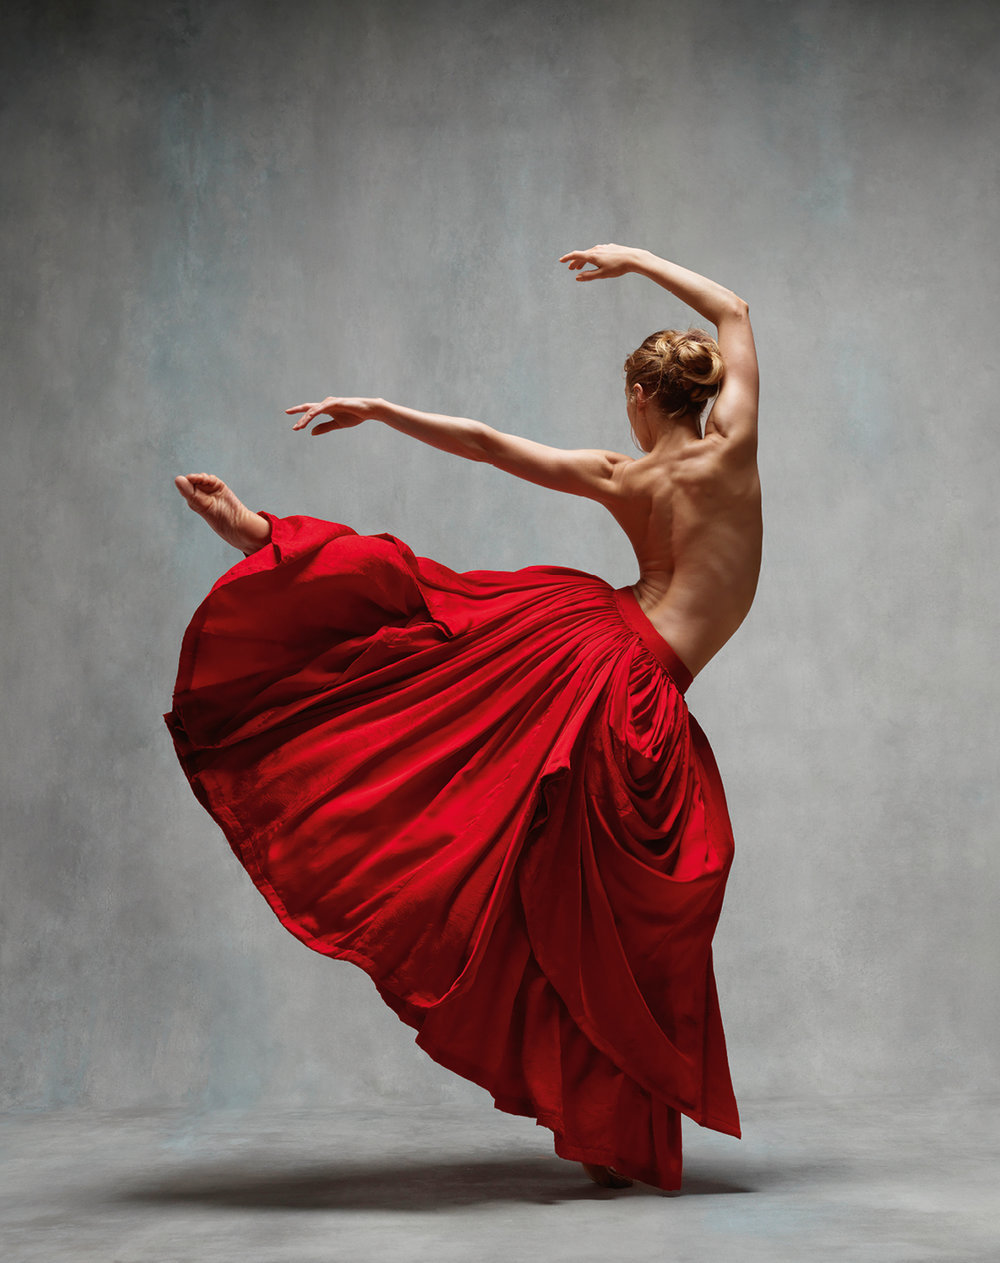 Ashley Ellis © Ken Browar and Deborah Ory · www.nycdanceproject.com.